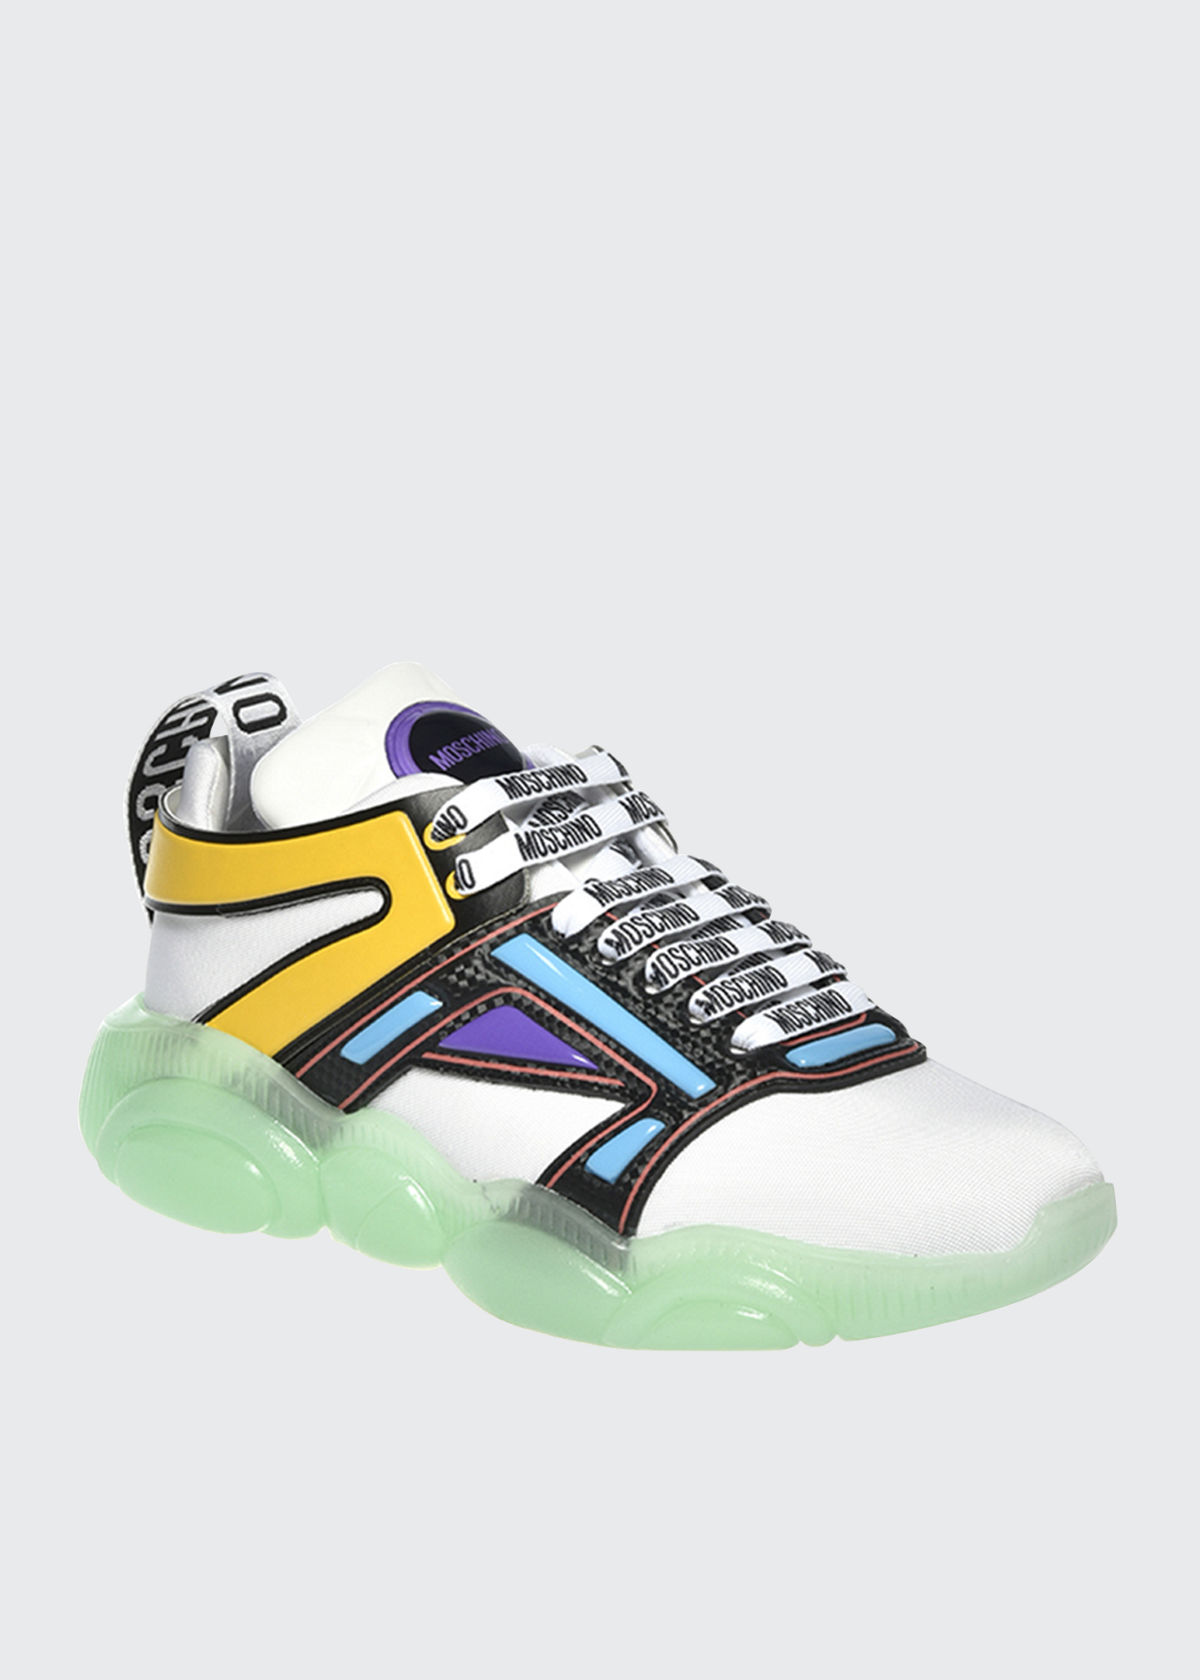 Moschino Leathers MEN'S MULTICOLOR CLEAR-SOLE CHUNKY SNEAKERS